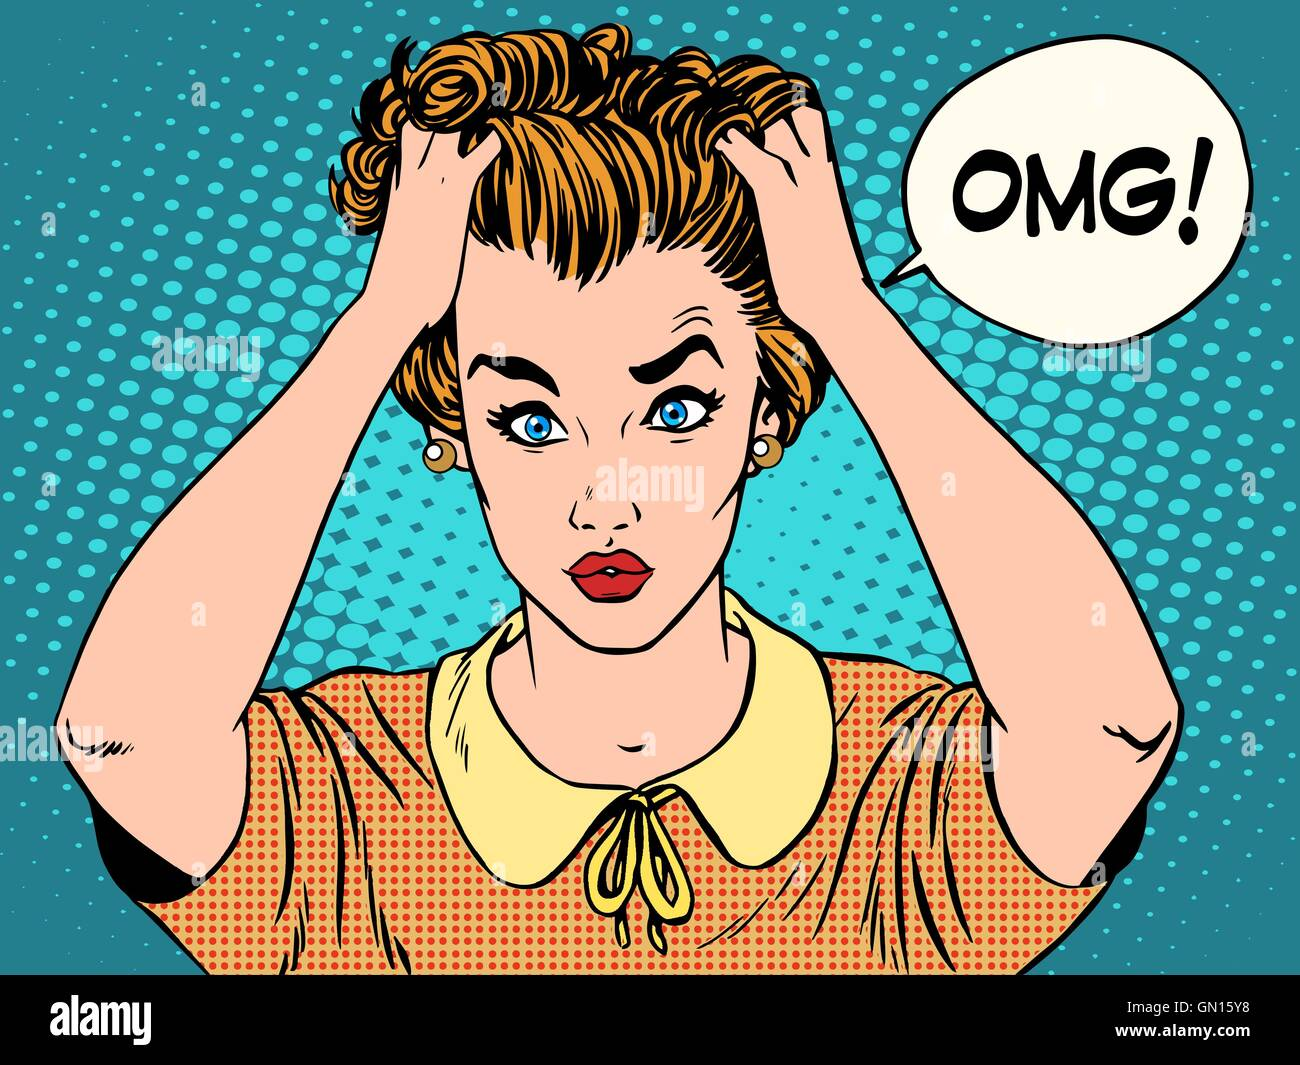 OMG the woman in shock - Stock Vector